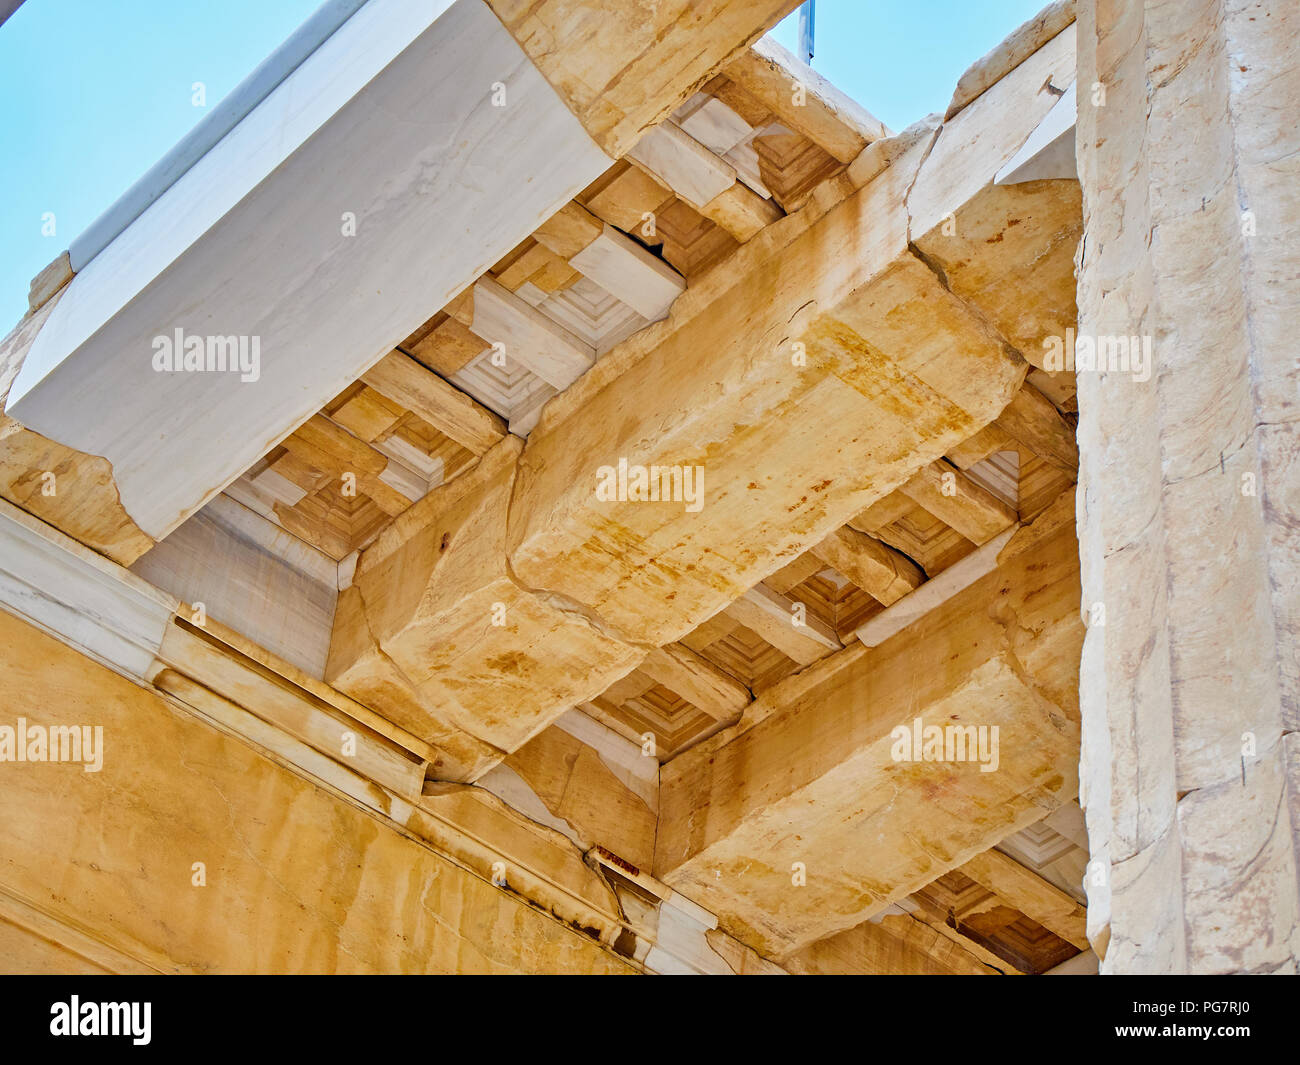 Restored architrave detail of eastern facade of Propylaea, the ancient gateway to the Athenian Acropolis. Athens. Attica, Greece. - Stock Image